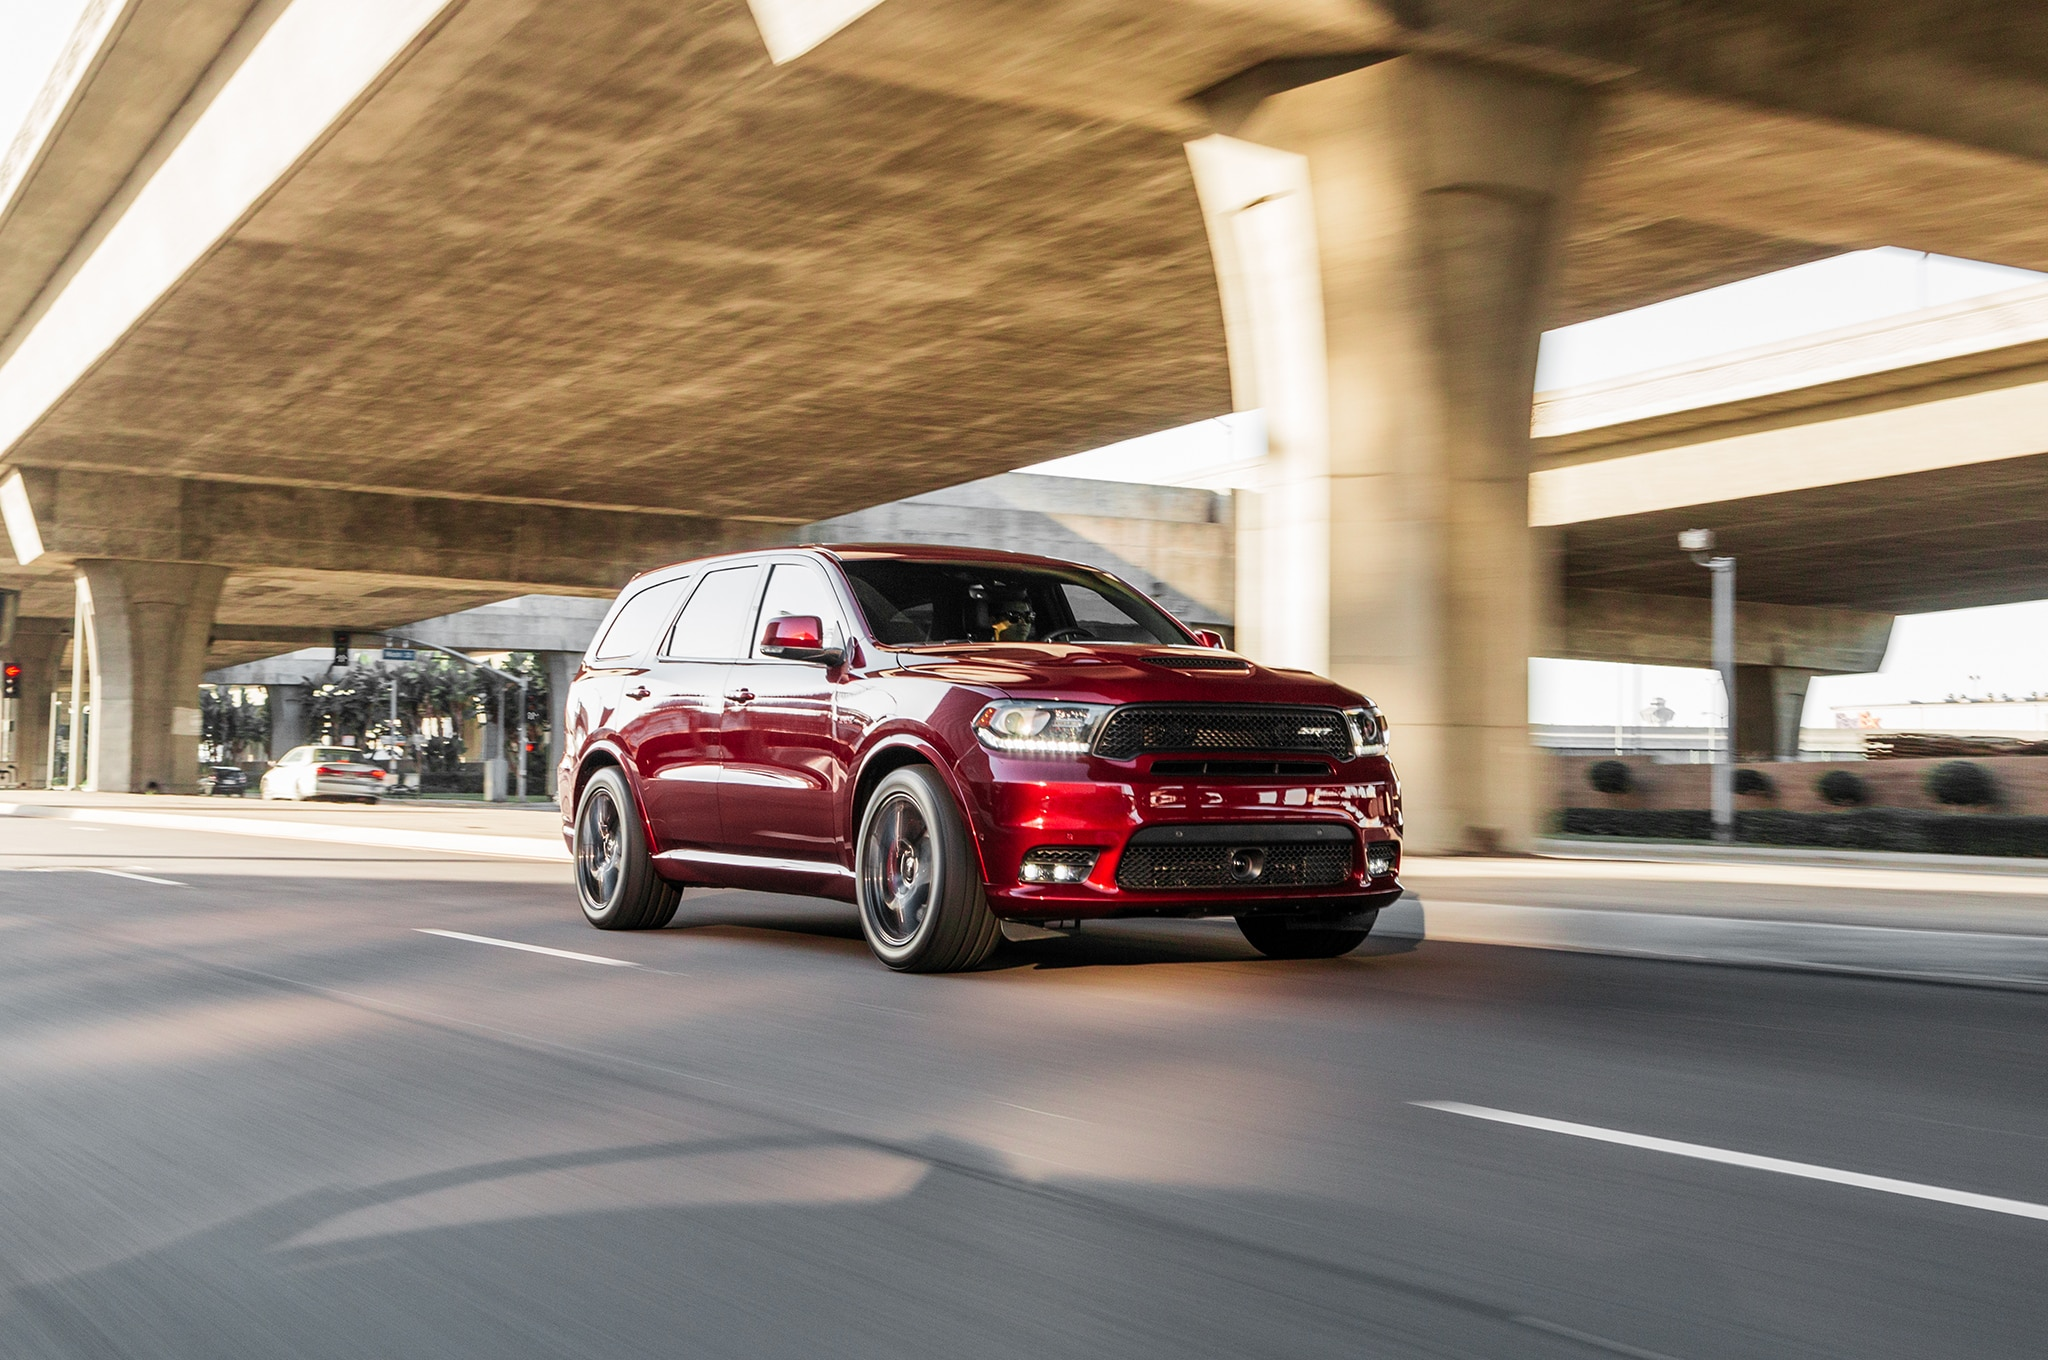 2017 Dodge Charger Msrp >> Integrated Trailer Brake Comes to 2019 Dodge Durango Along ...